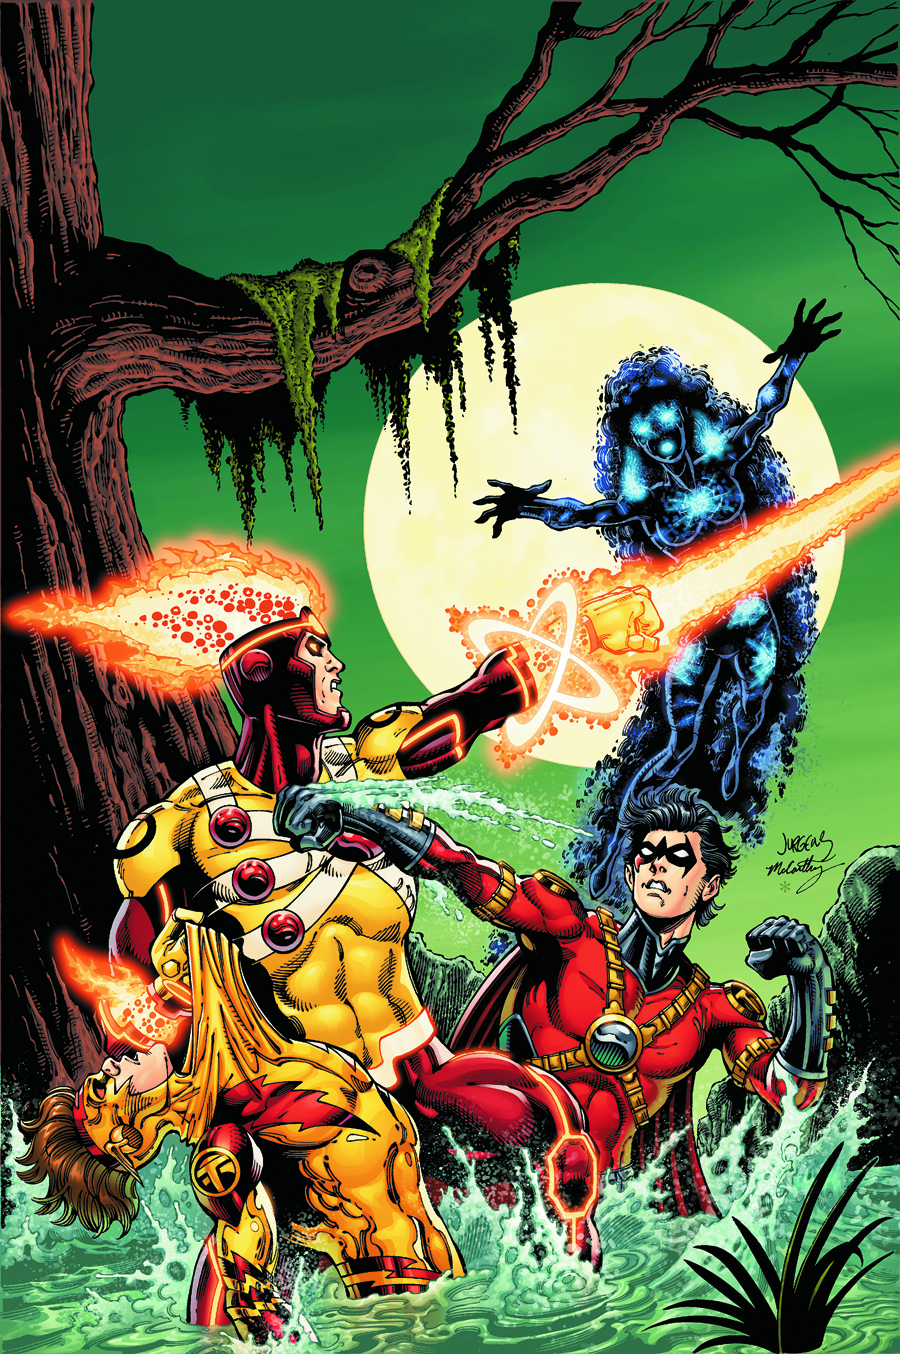 FURY OF FIRESTORM THE NUCLEAR MAN #17